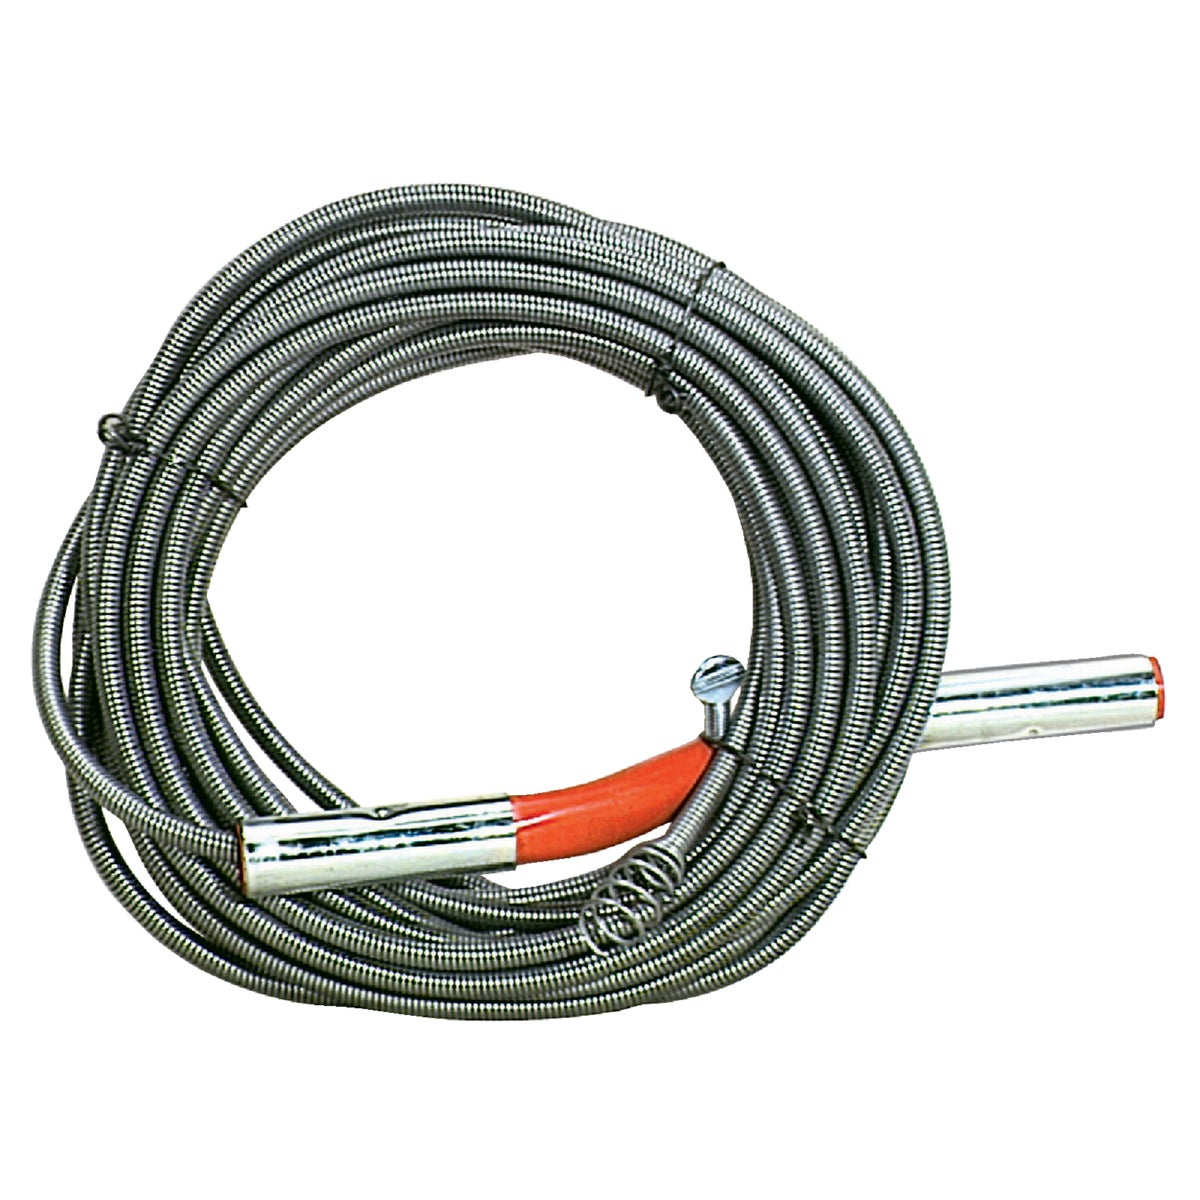 50' DRAIN PIPE CLEANER - 50PMH by Gen Wire Spring Co